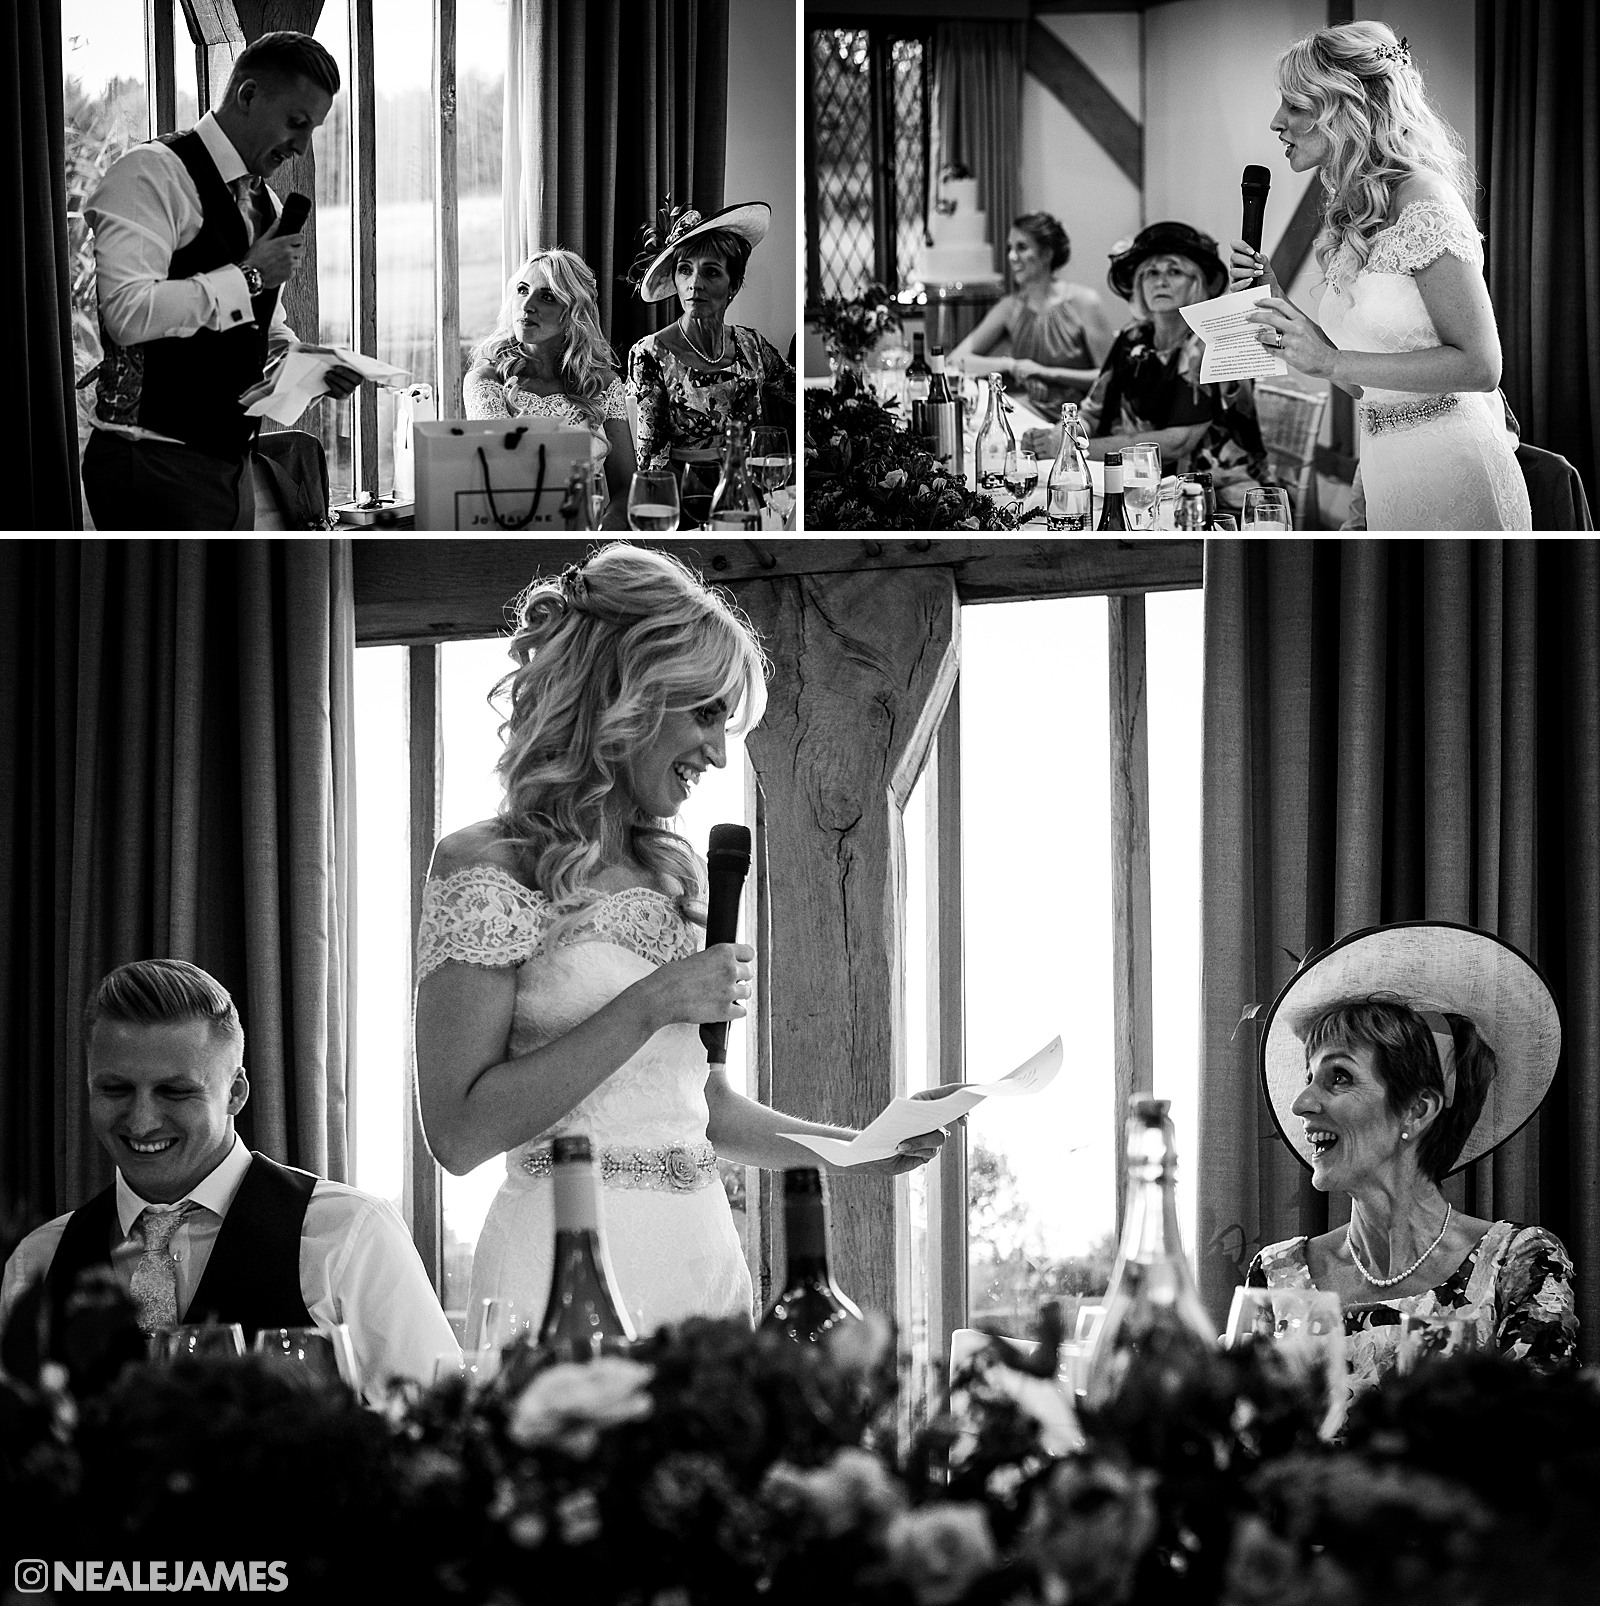 In a black and white photo, a bride making a speech at her wedding